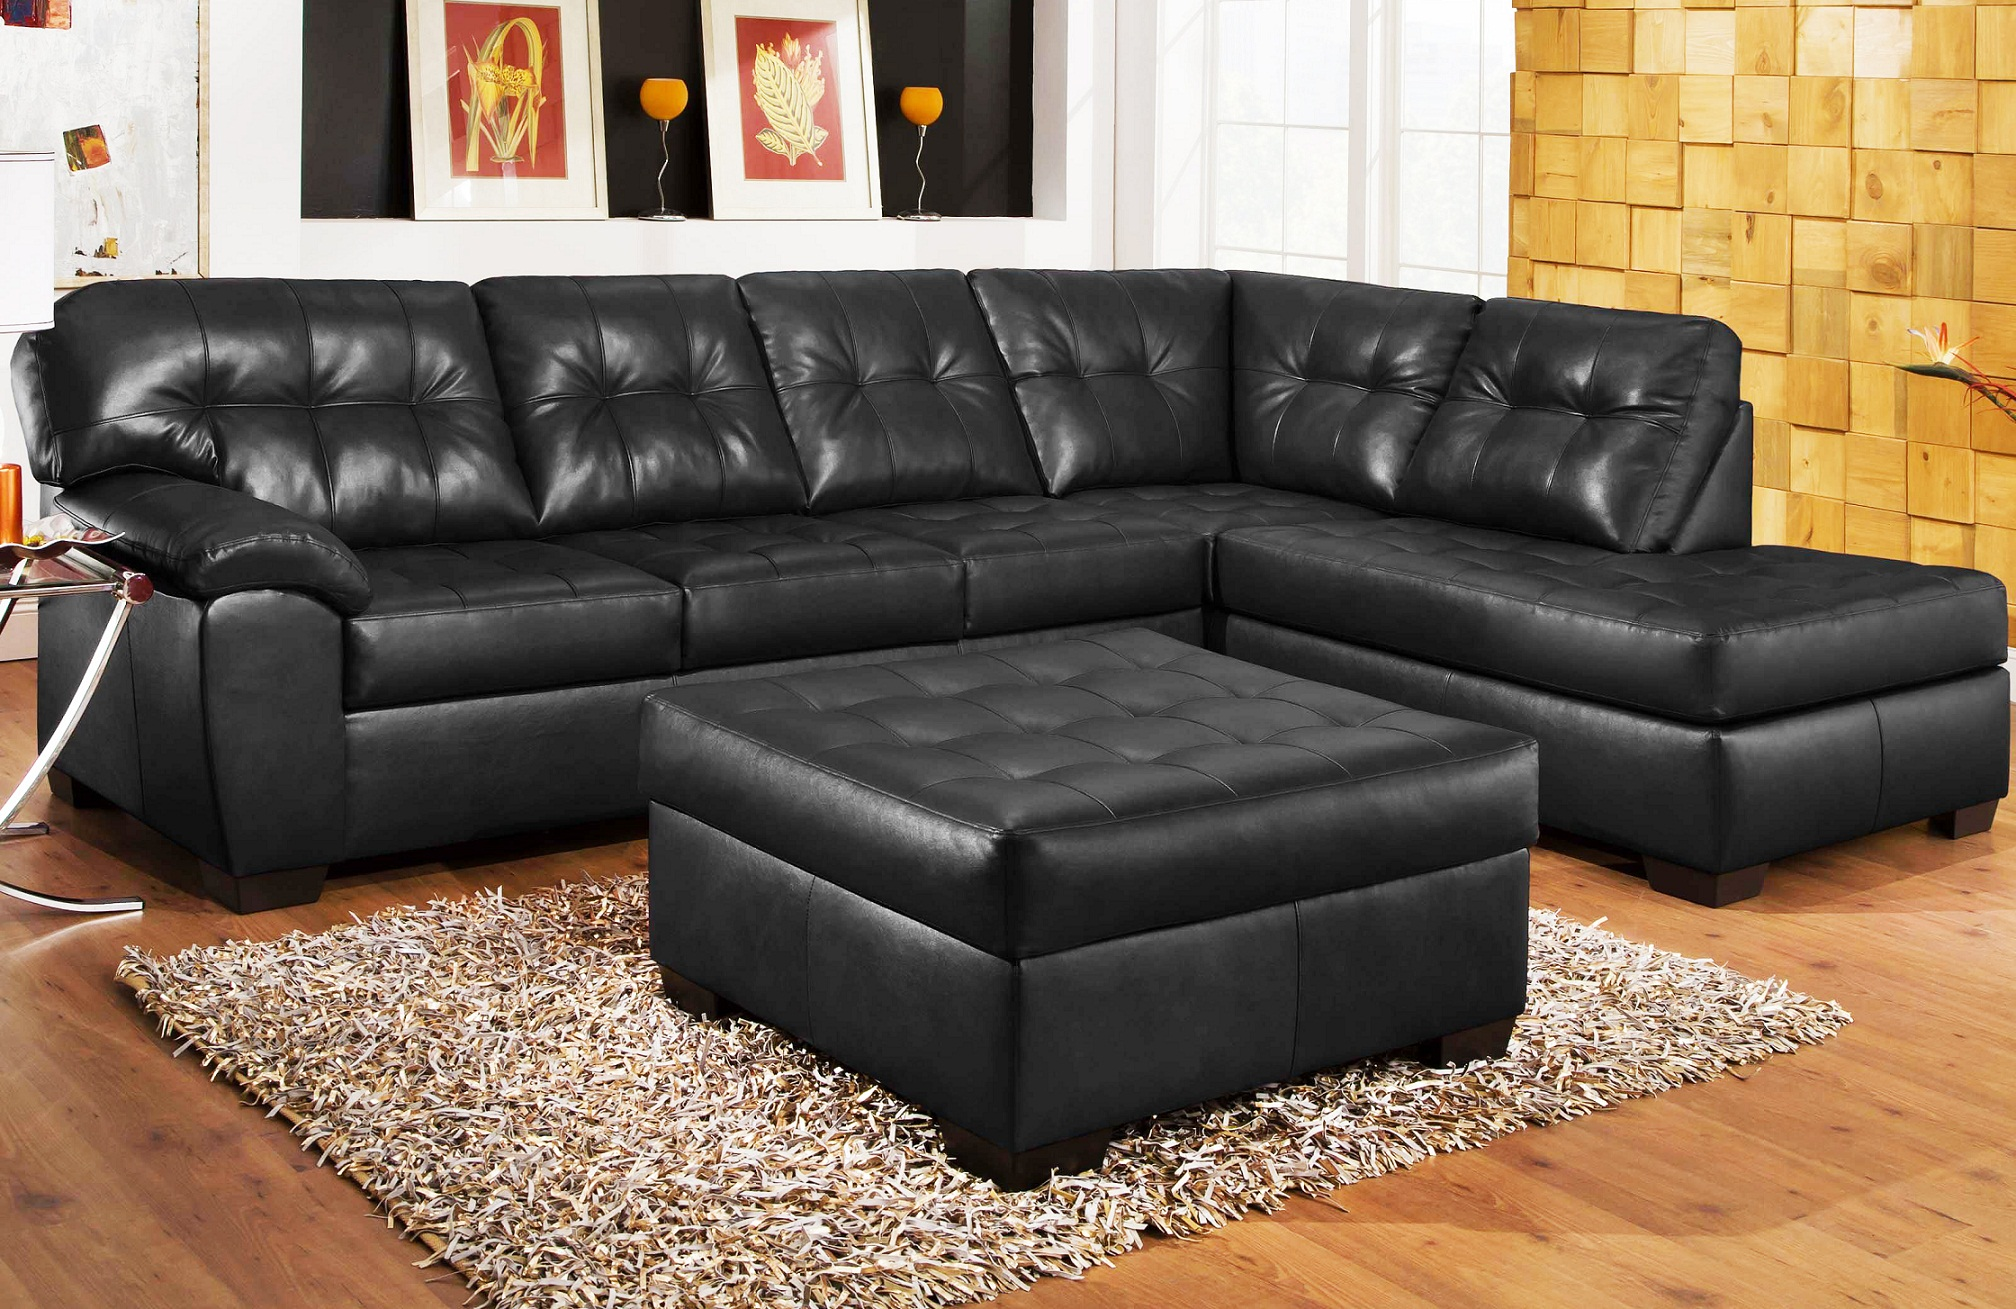 Amazing black leather sectional for elegant living room design with black leather sectional sofa